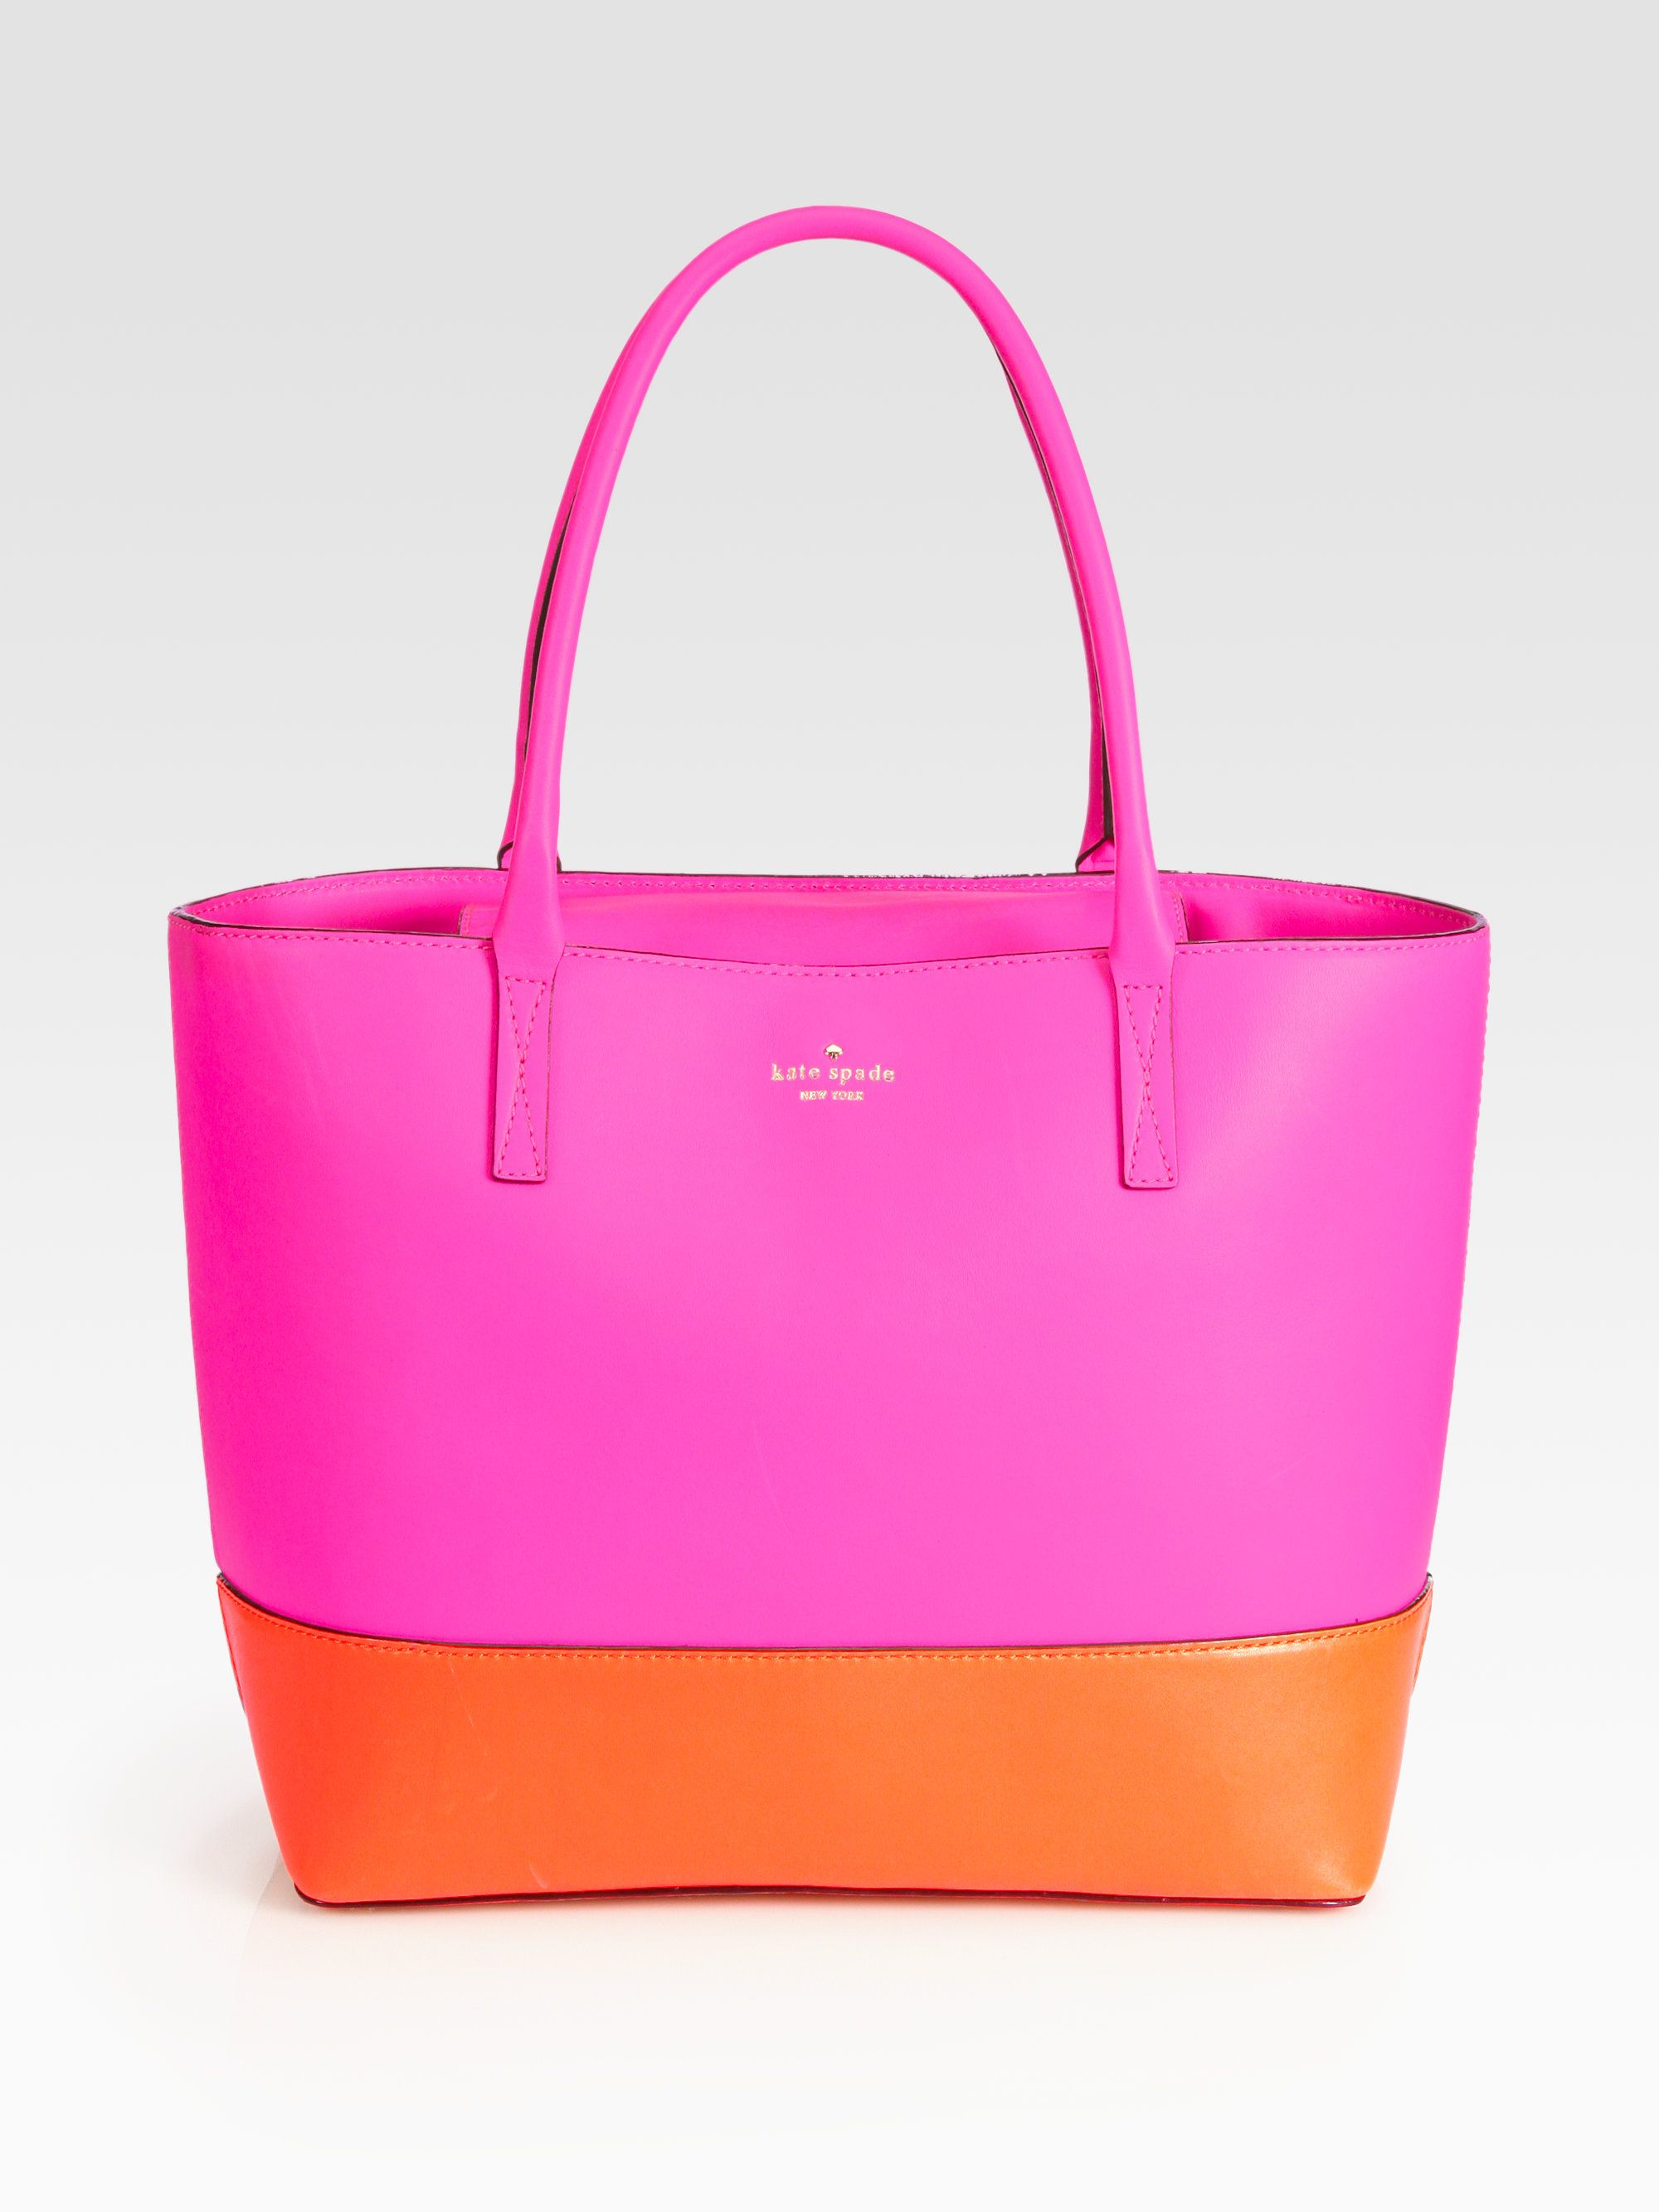 396b5f8a9a1a Kate spade Madison Park Small Colorblock Tote in Orange (pink-orange) | Lyst,Gorgeous  Kate Spade New York completely sold out bright orange and pink ...